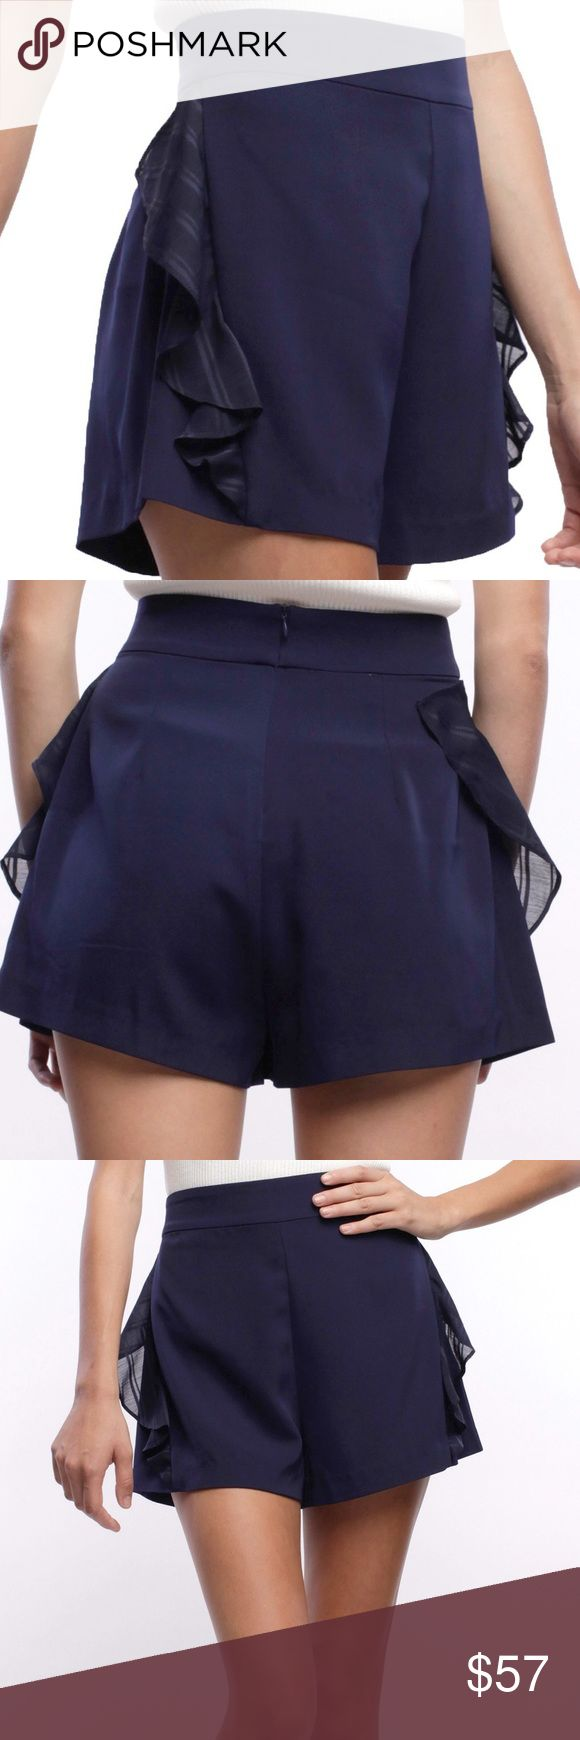 "Oscar shorts by Line + Dot Navy blue high waisted shorts.""SELF-97% POLYESTER 3% SPAN LINING-100% POLYESTER"" Designed in Sunny California. Imported. Dry clean only. Price Firm Line & Dot Shorts"